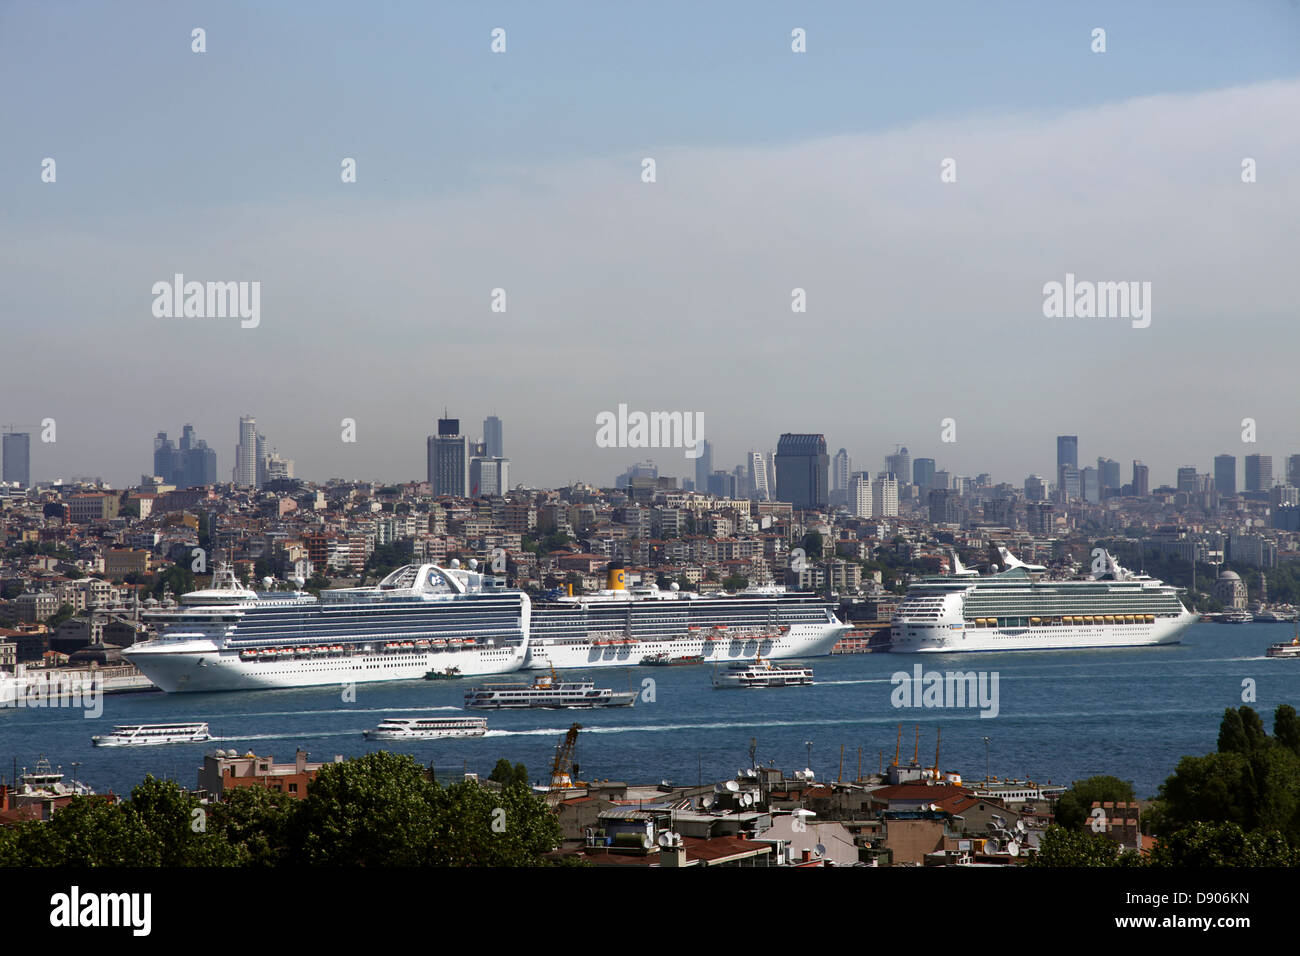 CRUISE LINERS IN PORT ISTANBUL TURKEY 23 May 2012 - Stock Image